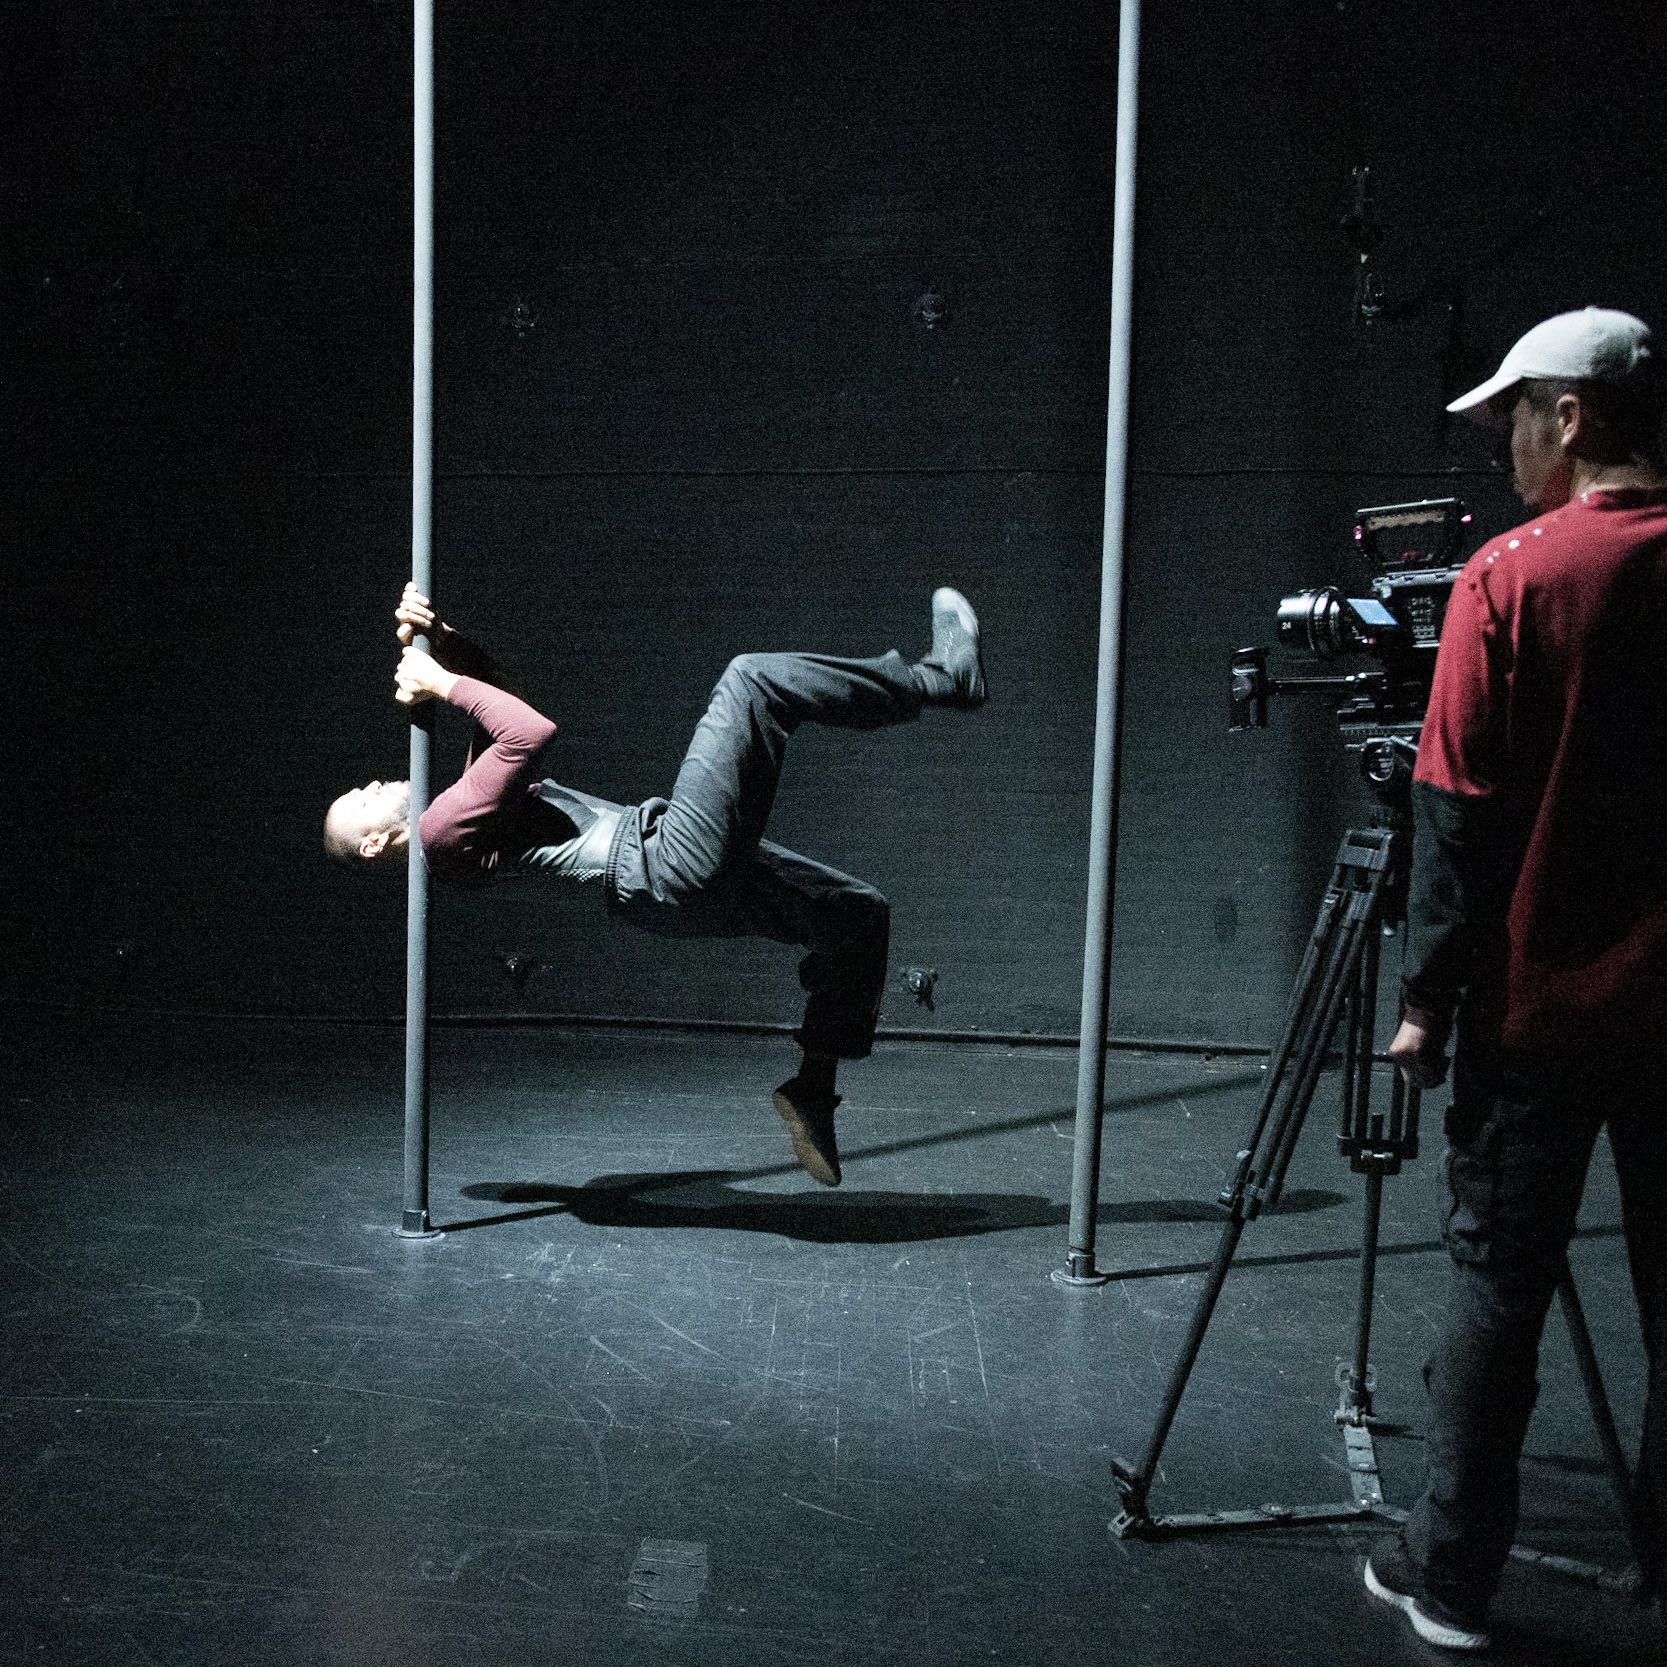 A man is filmed about to balance on a chinese pole